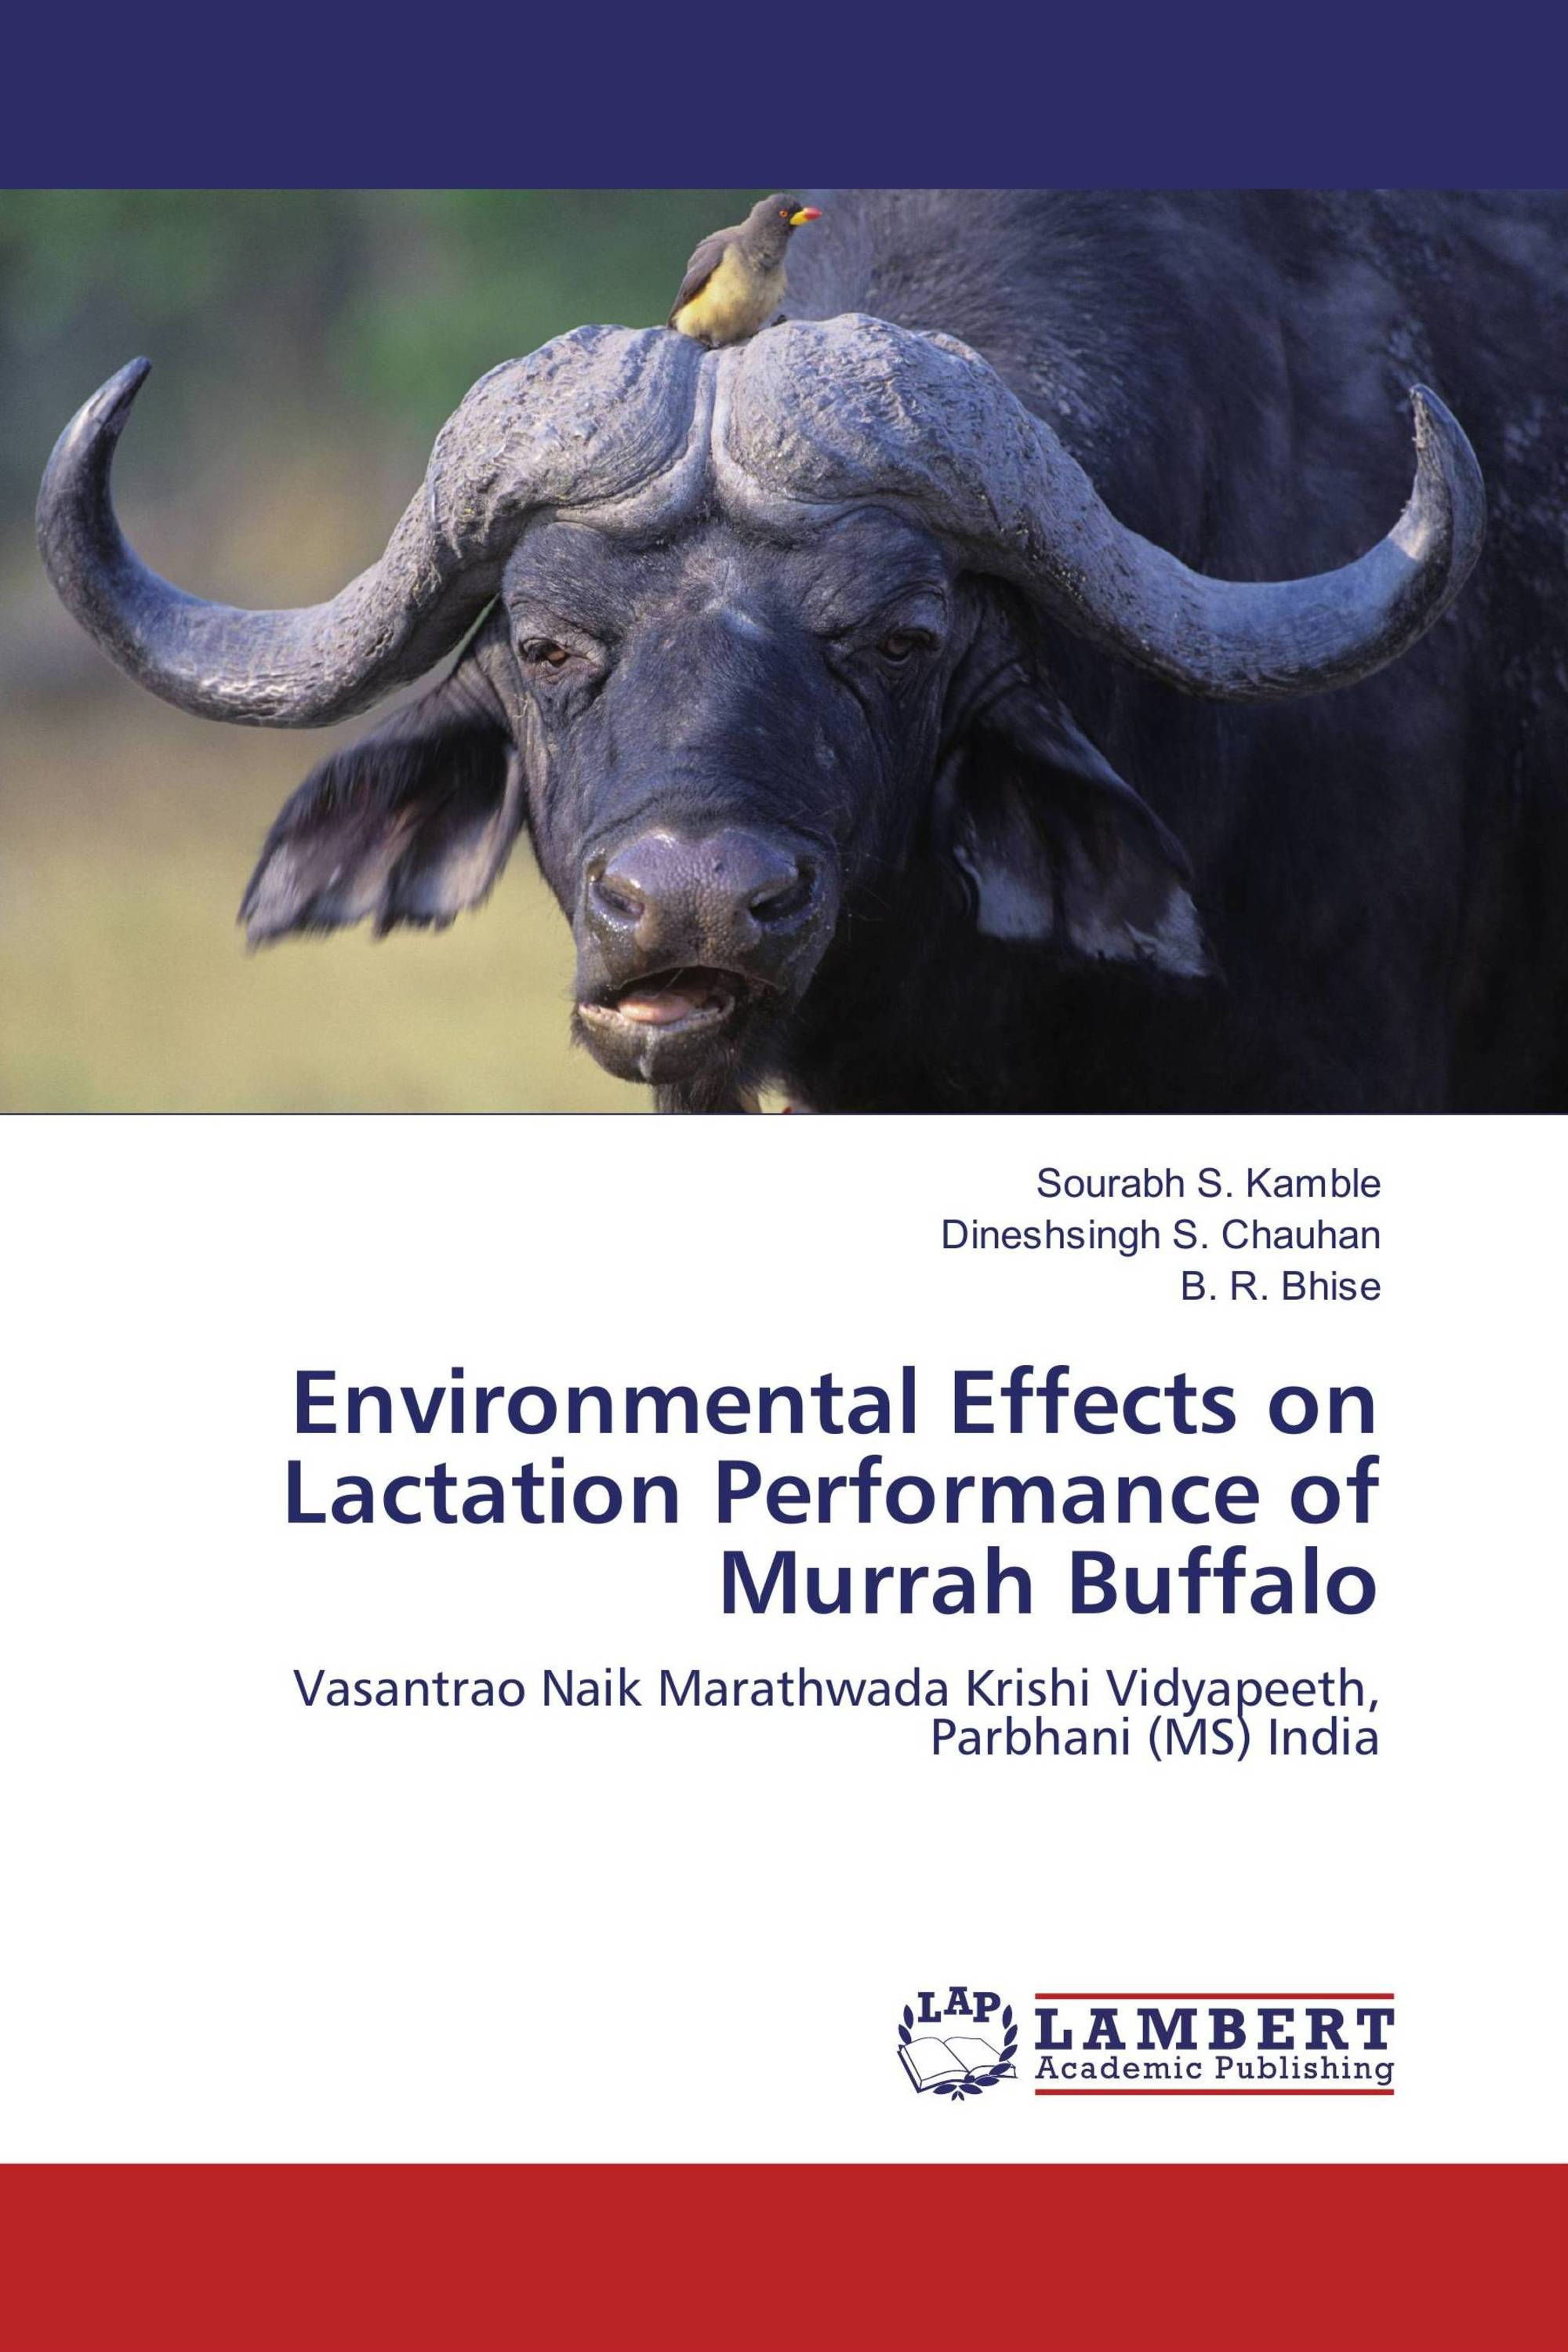 Environmental Effects on Lactation Performance of Murrah